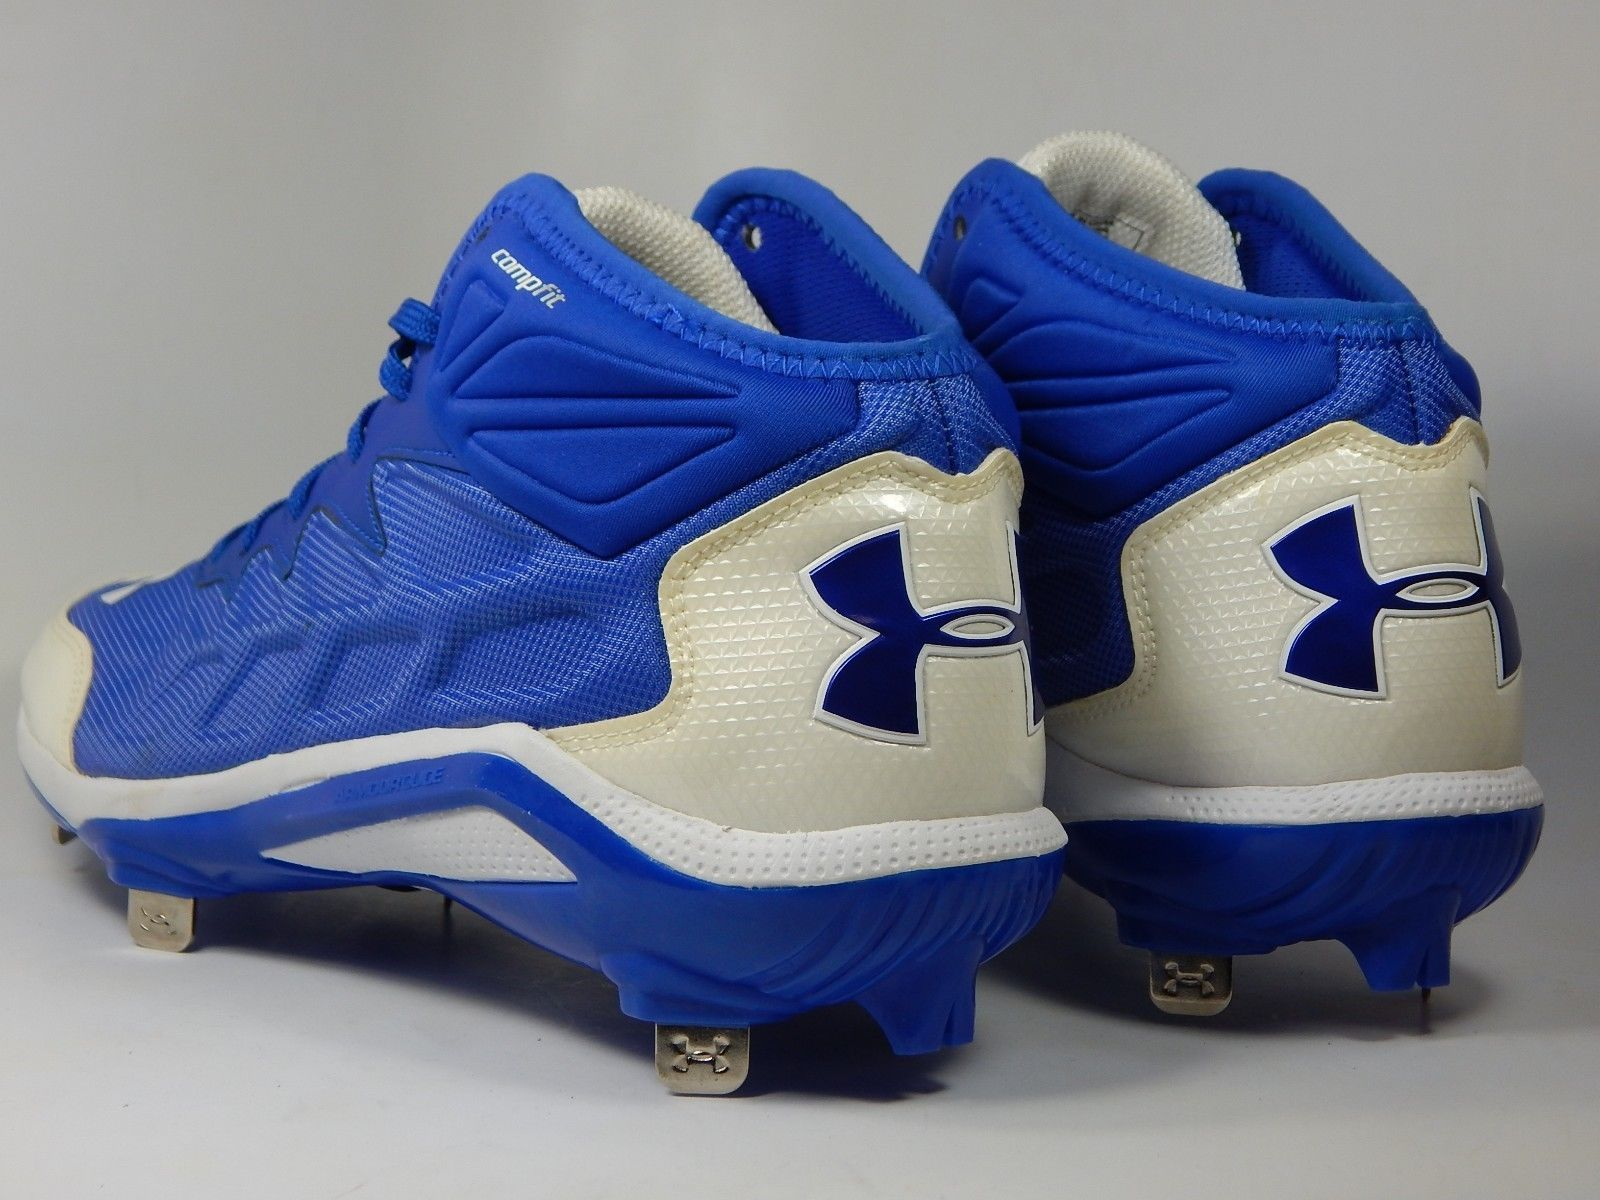 Under Armour Heater ST Mid Top Size 13 M Metal Baseball Cleats 1248197-411